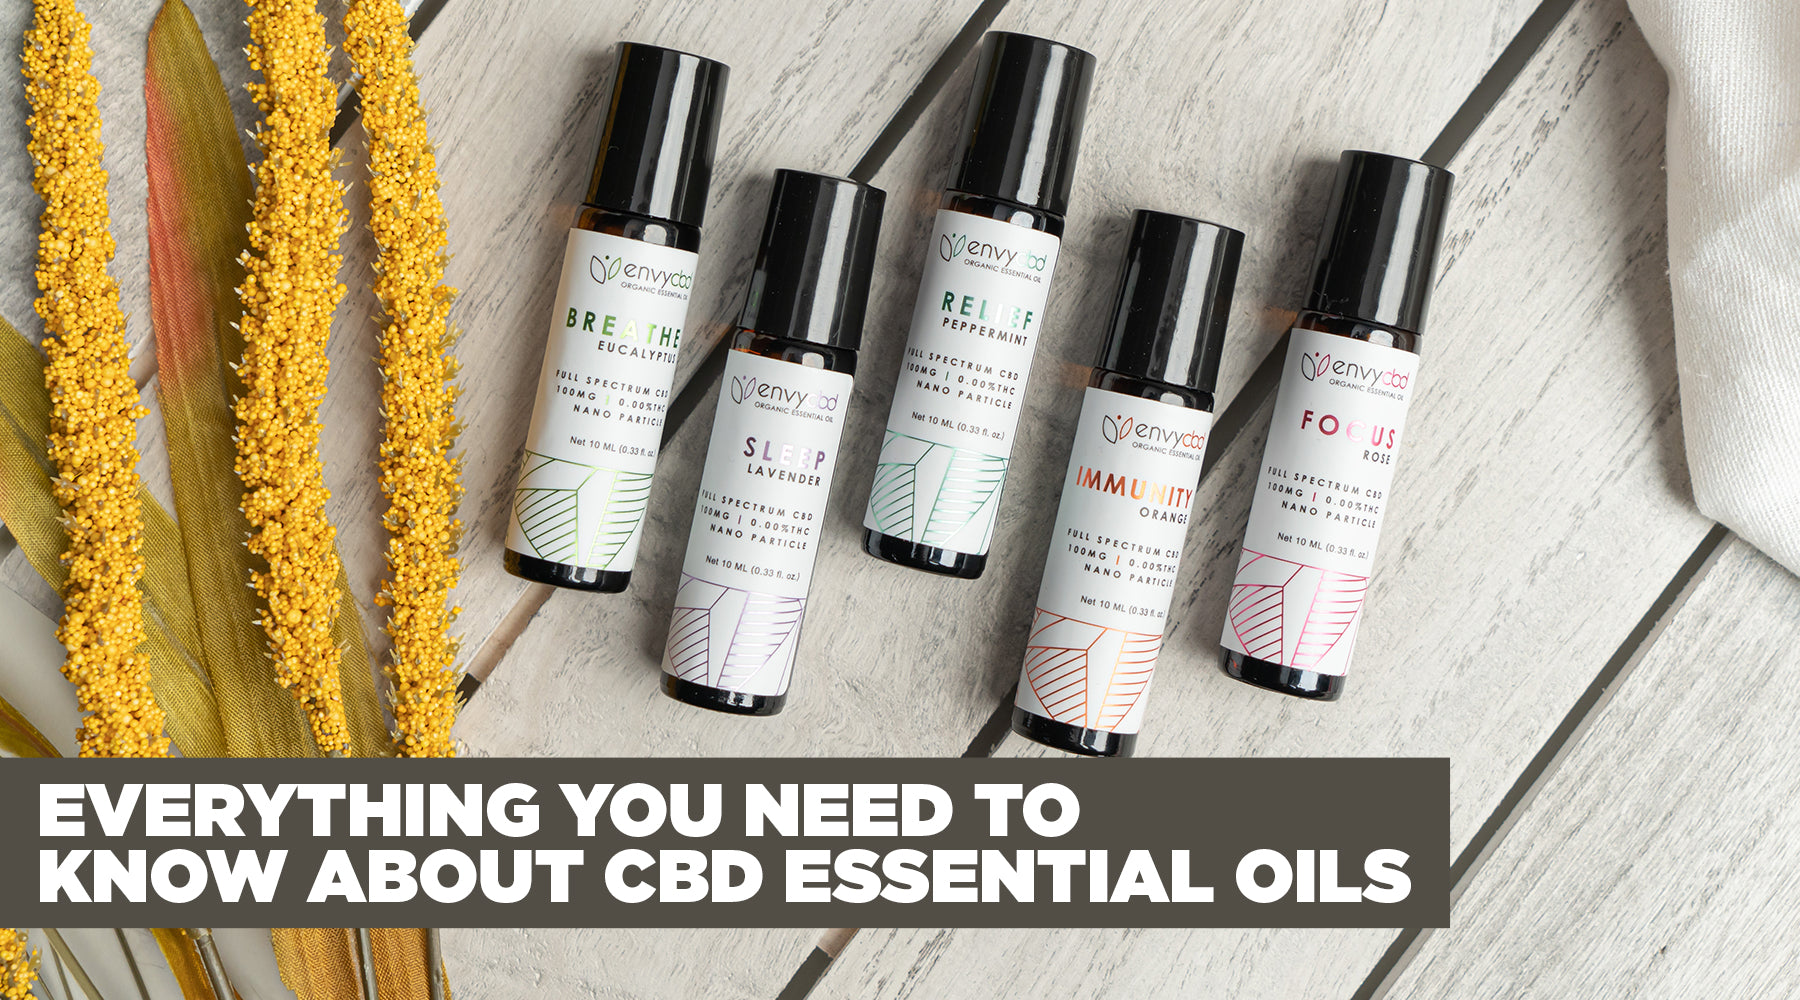 Everything You Need to Know About CBD Essential Oils